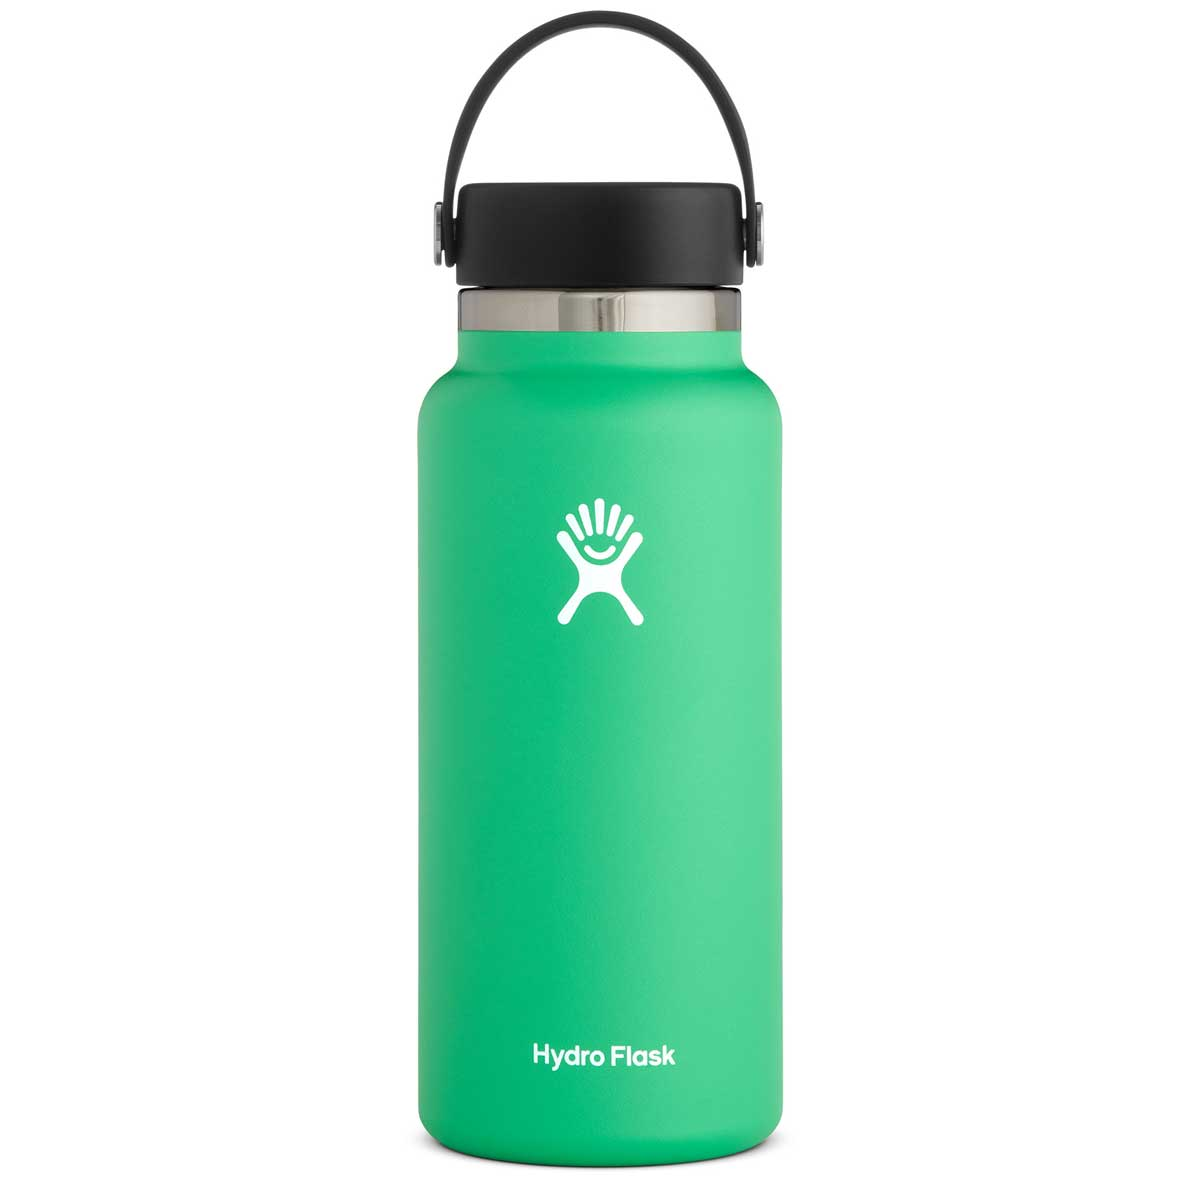 Hydro Flask Wide Mouth Insulated Water Bottle with Flex Cap - 32 oz